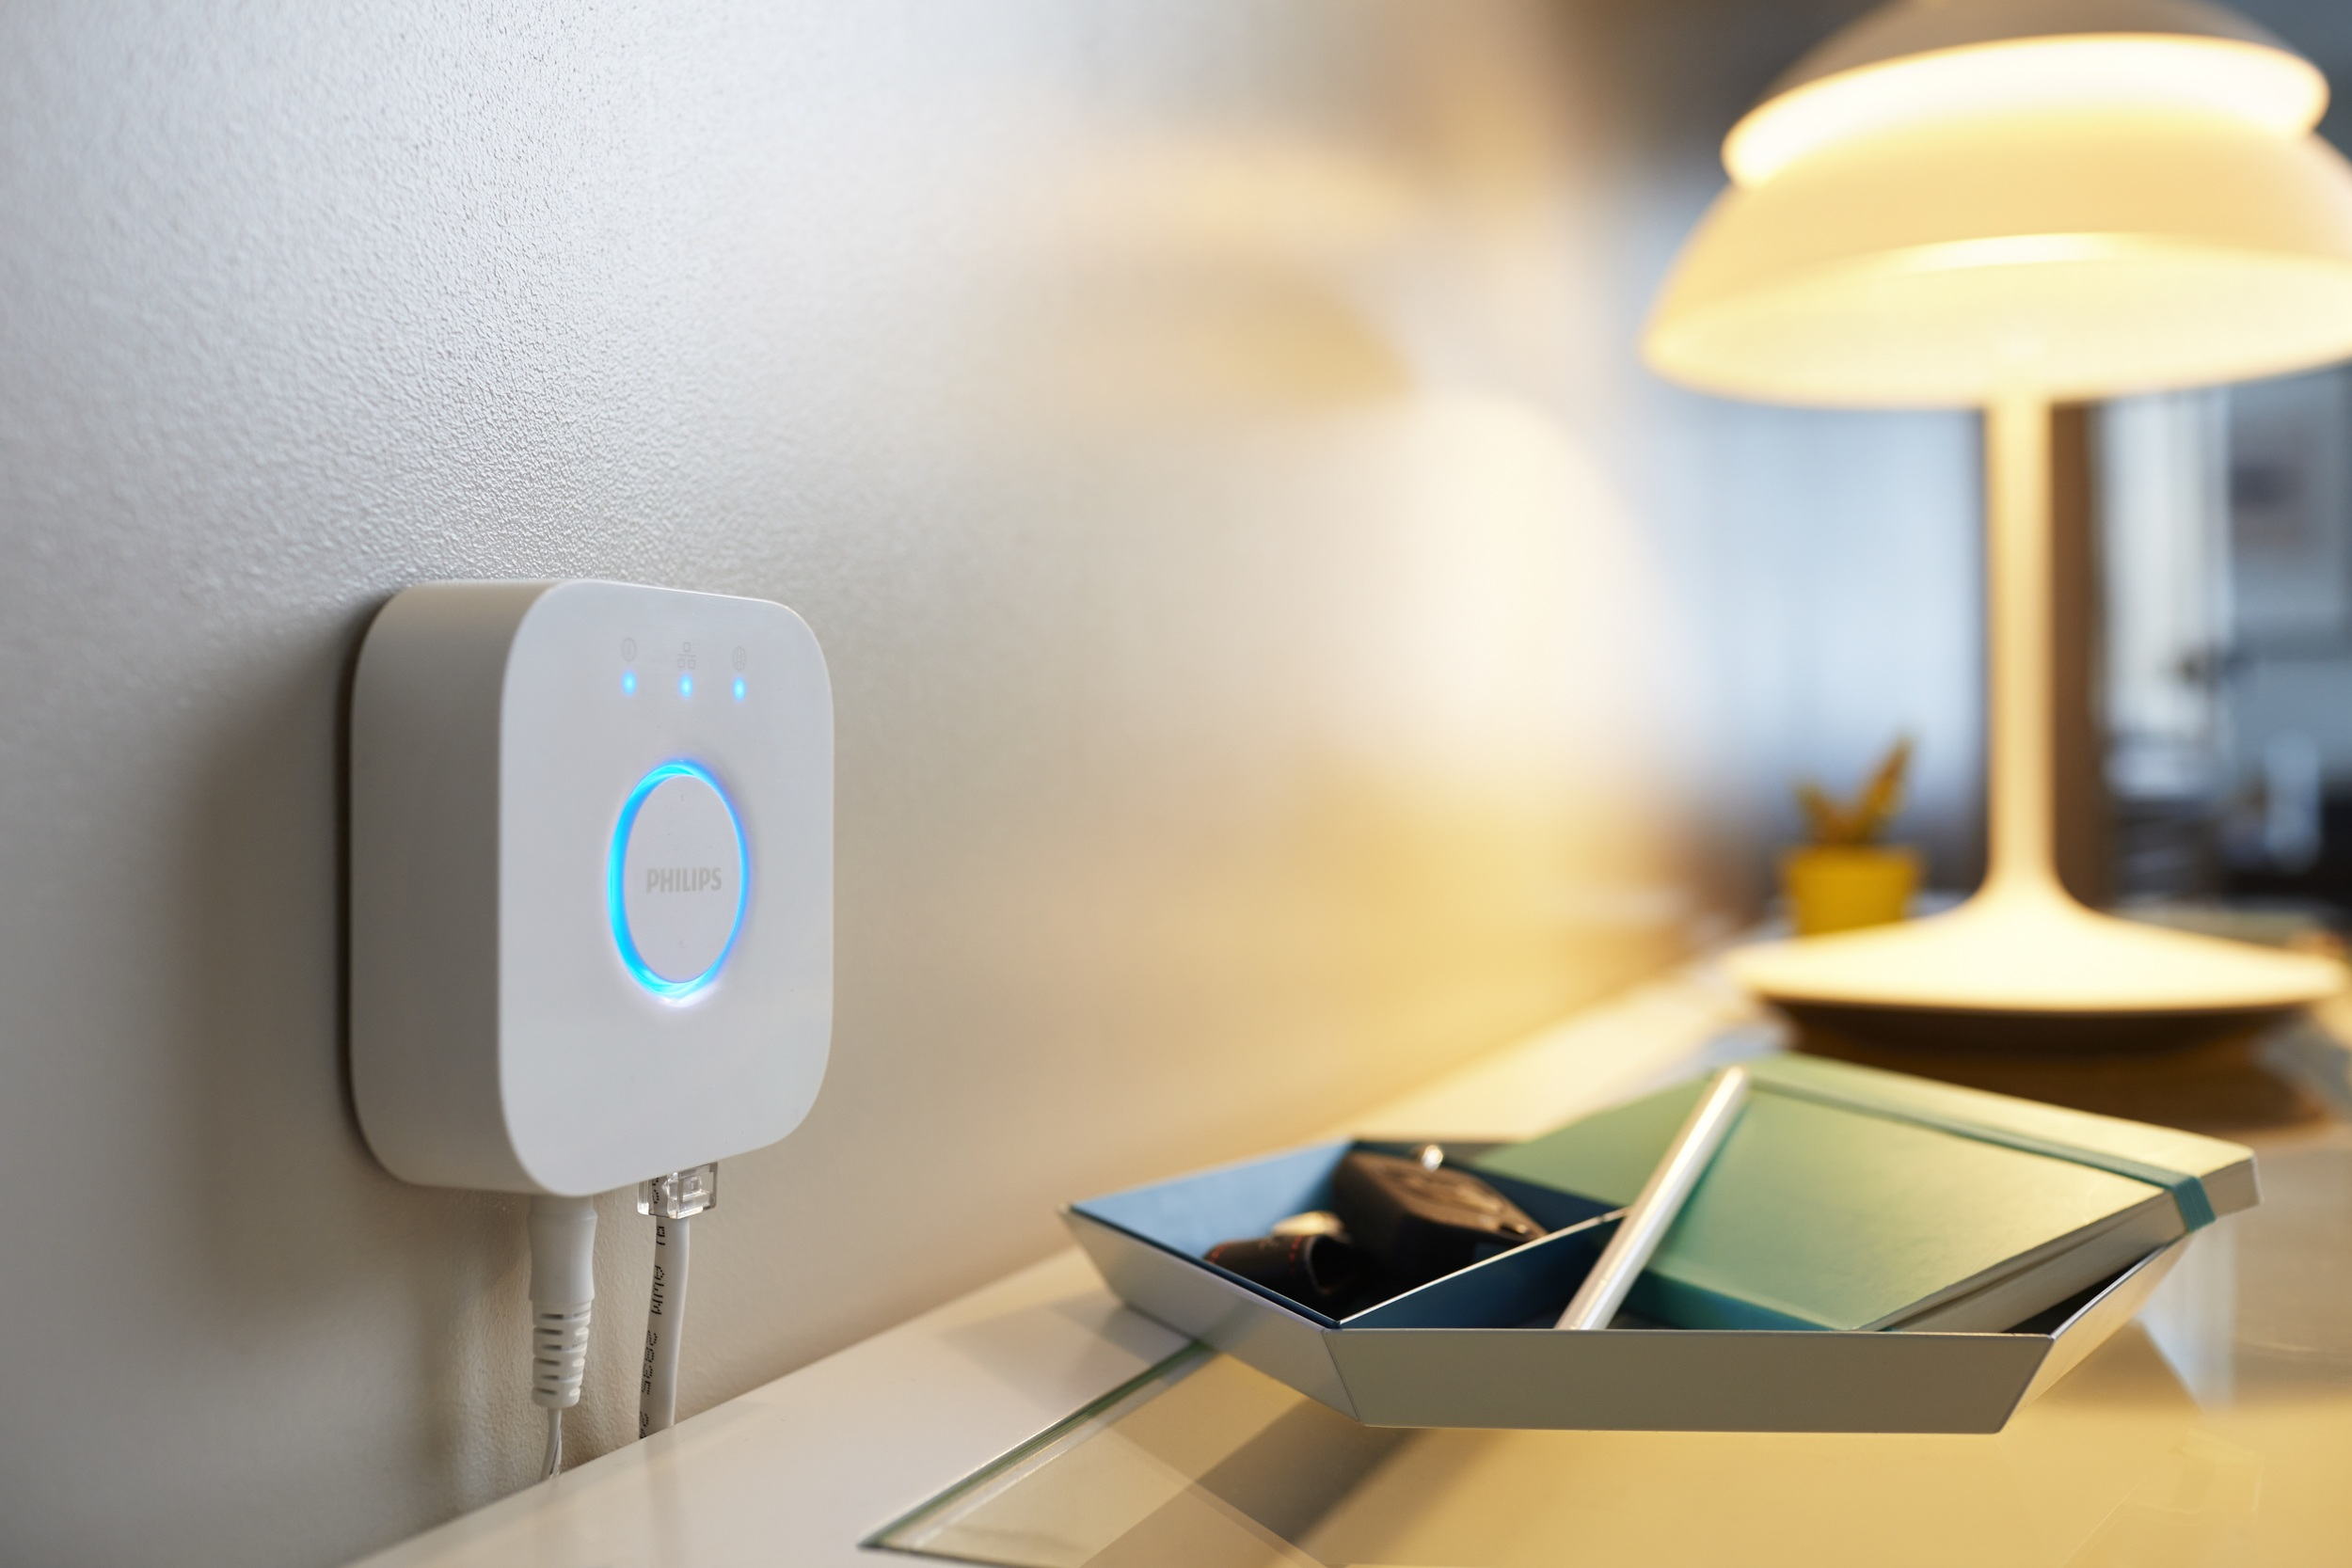 Philips Hue Bridge 2.0 - Photograph courtesy of Philips